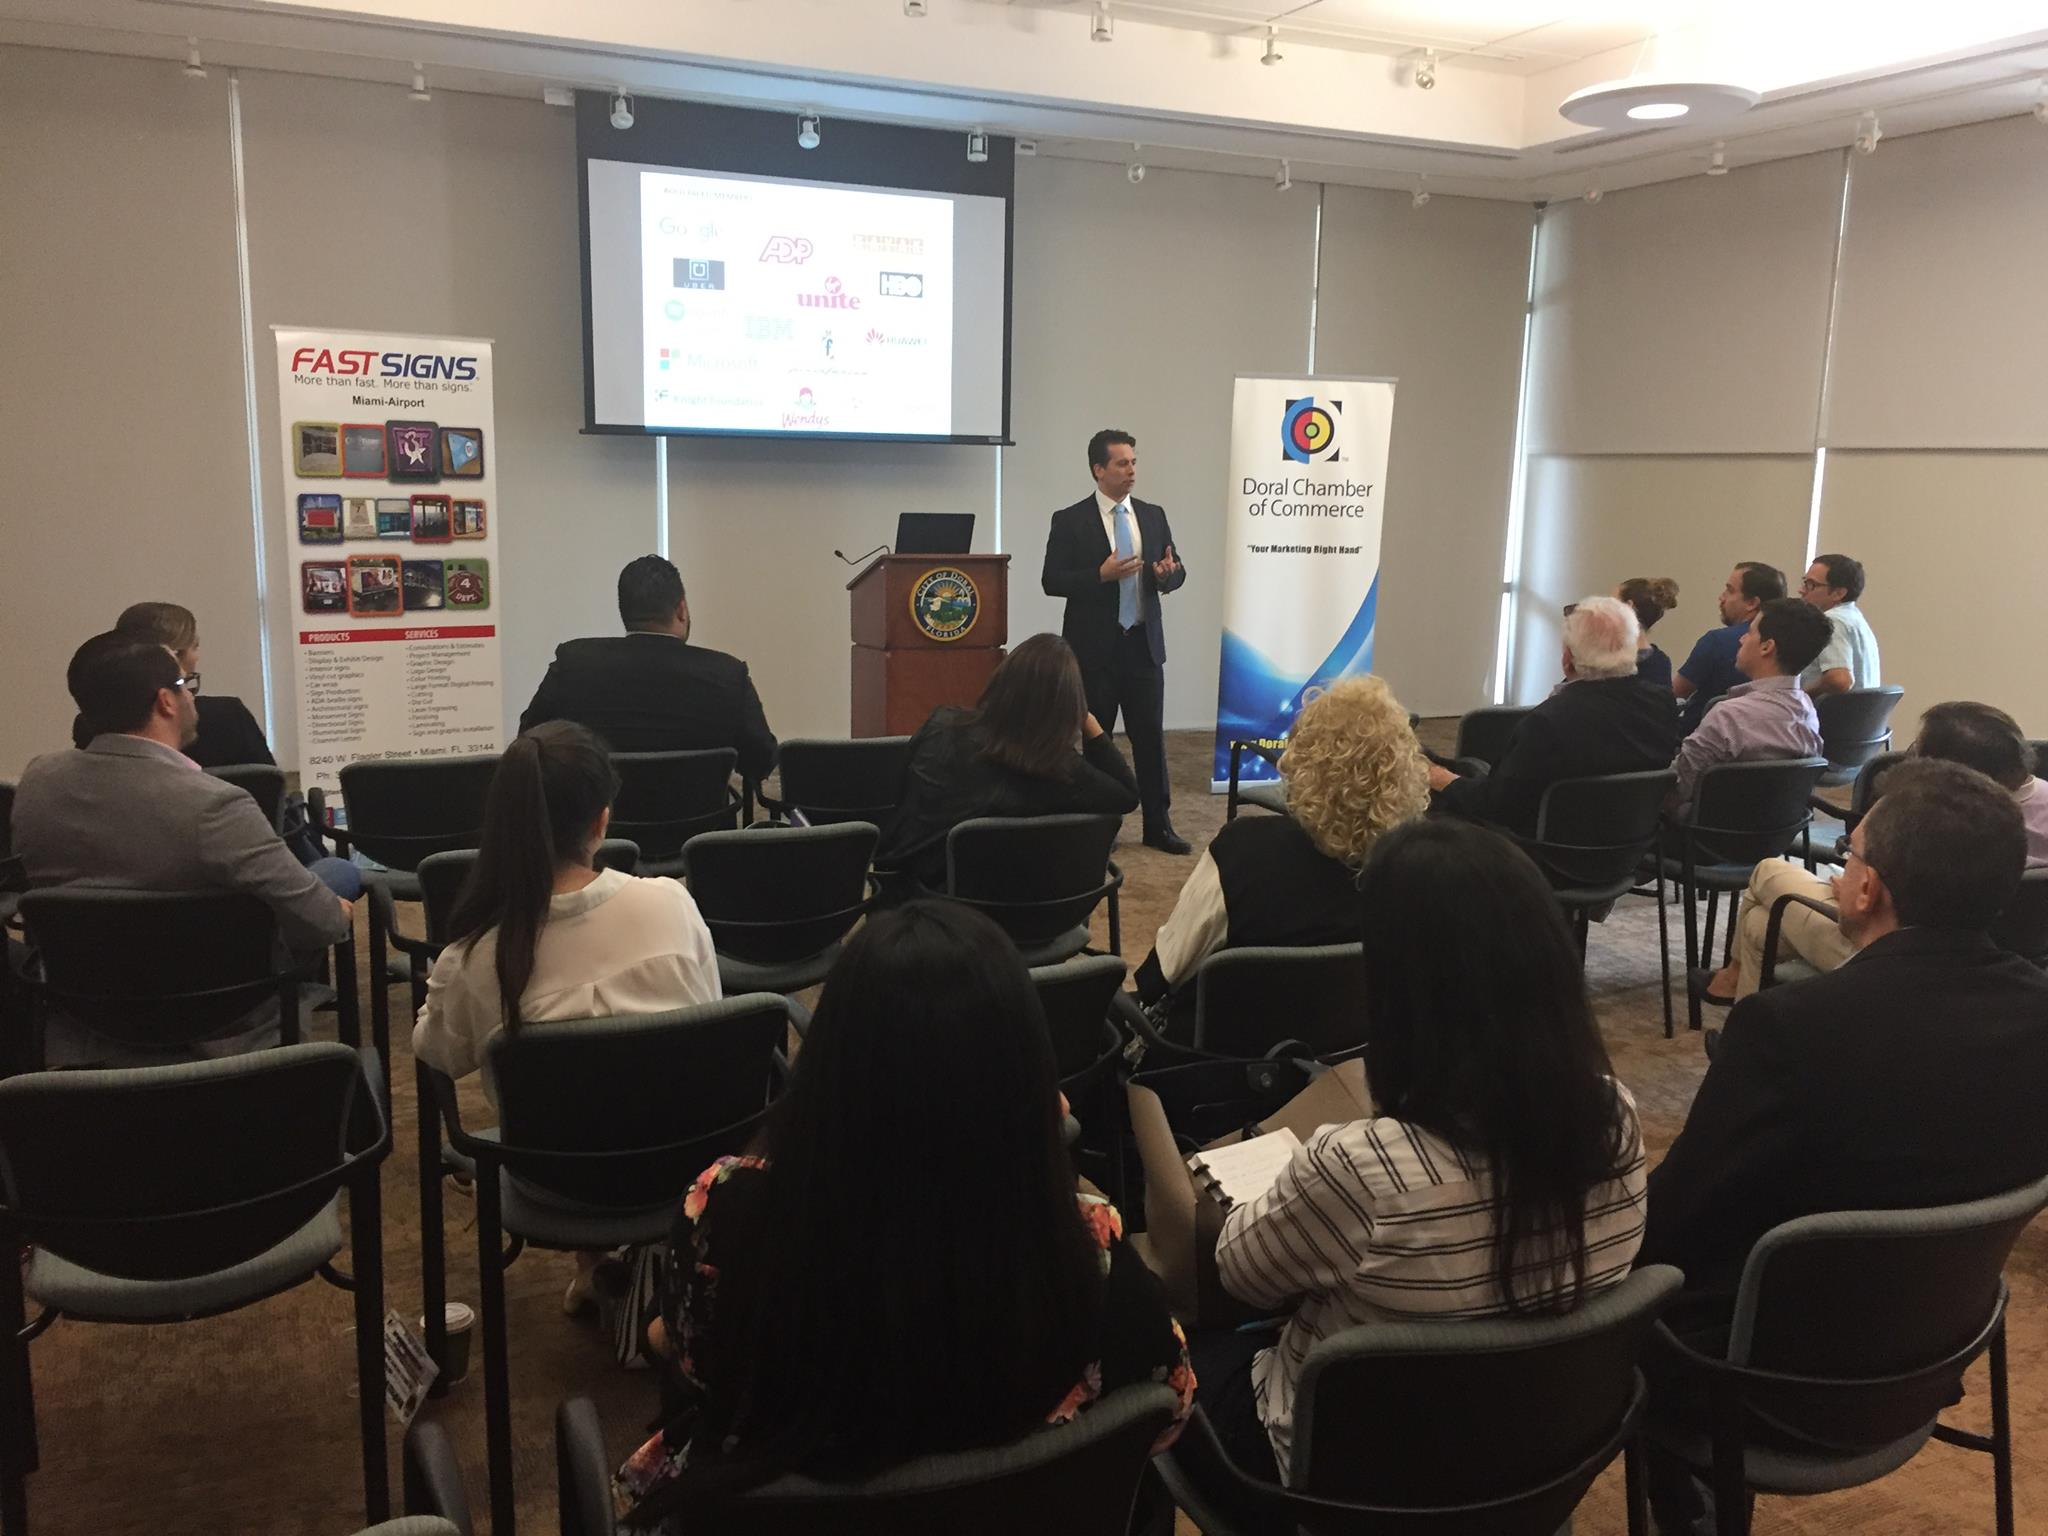 Startup Doral, a Doral Chamber of Commerce event, speech.